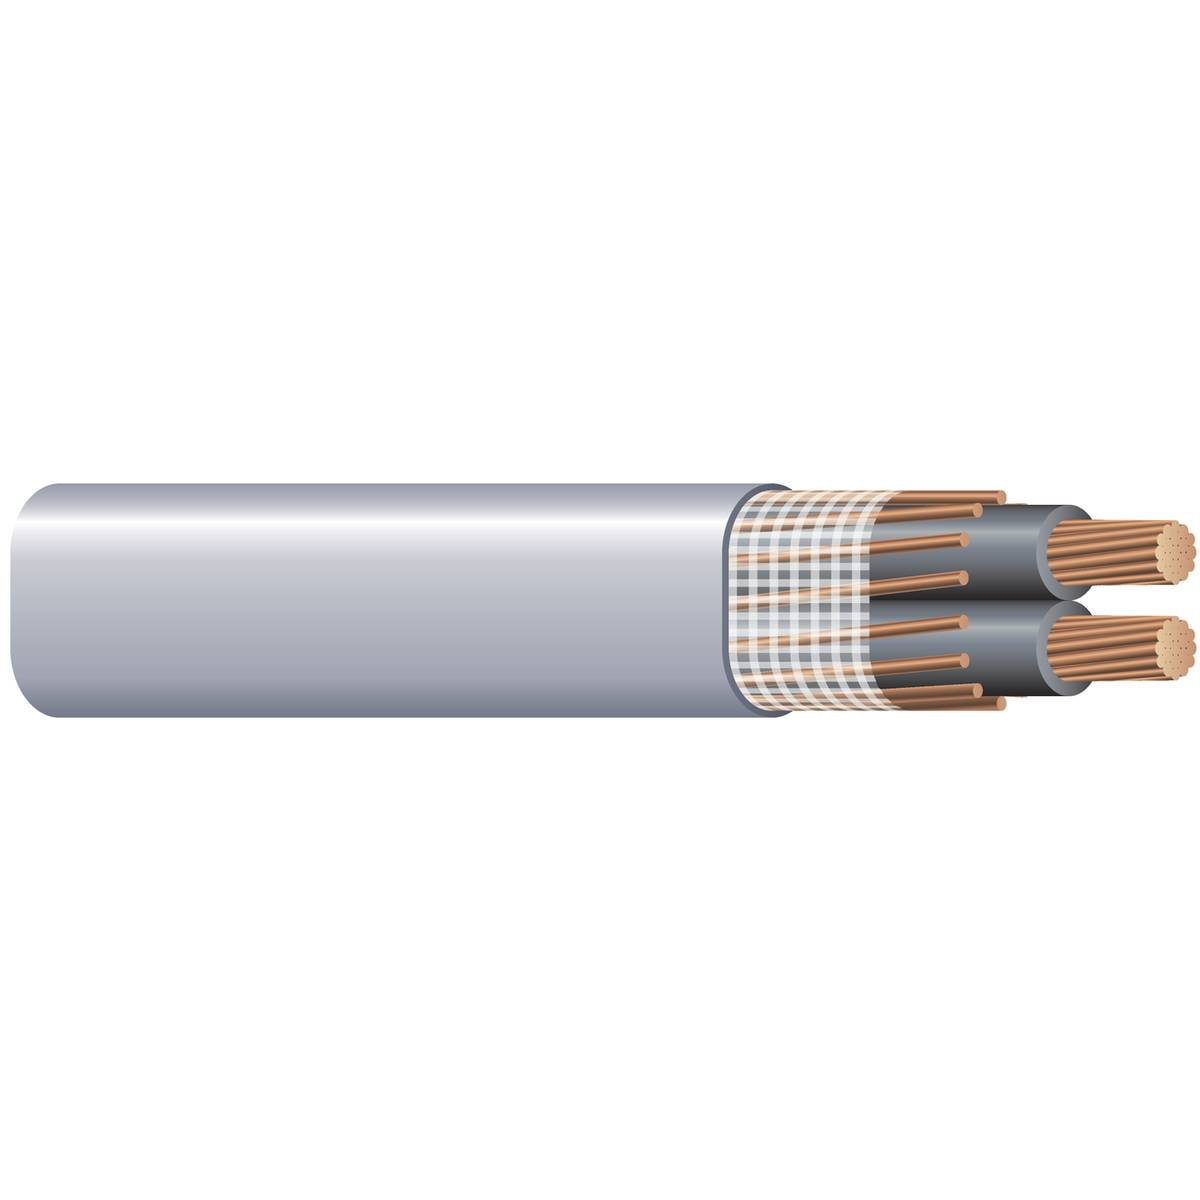 Wire & Cable CUSEUSTR 6/3 GRY 150'